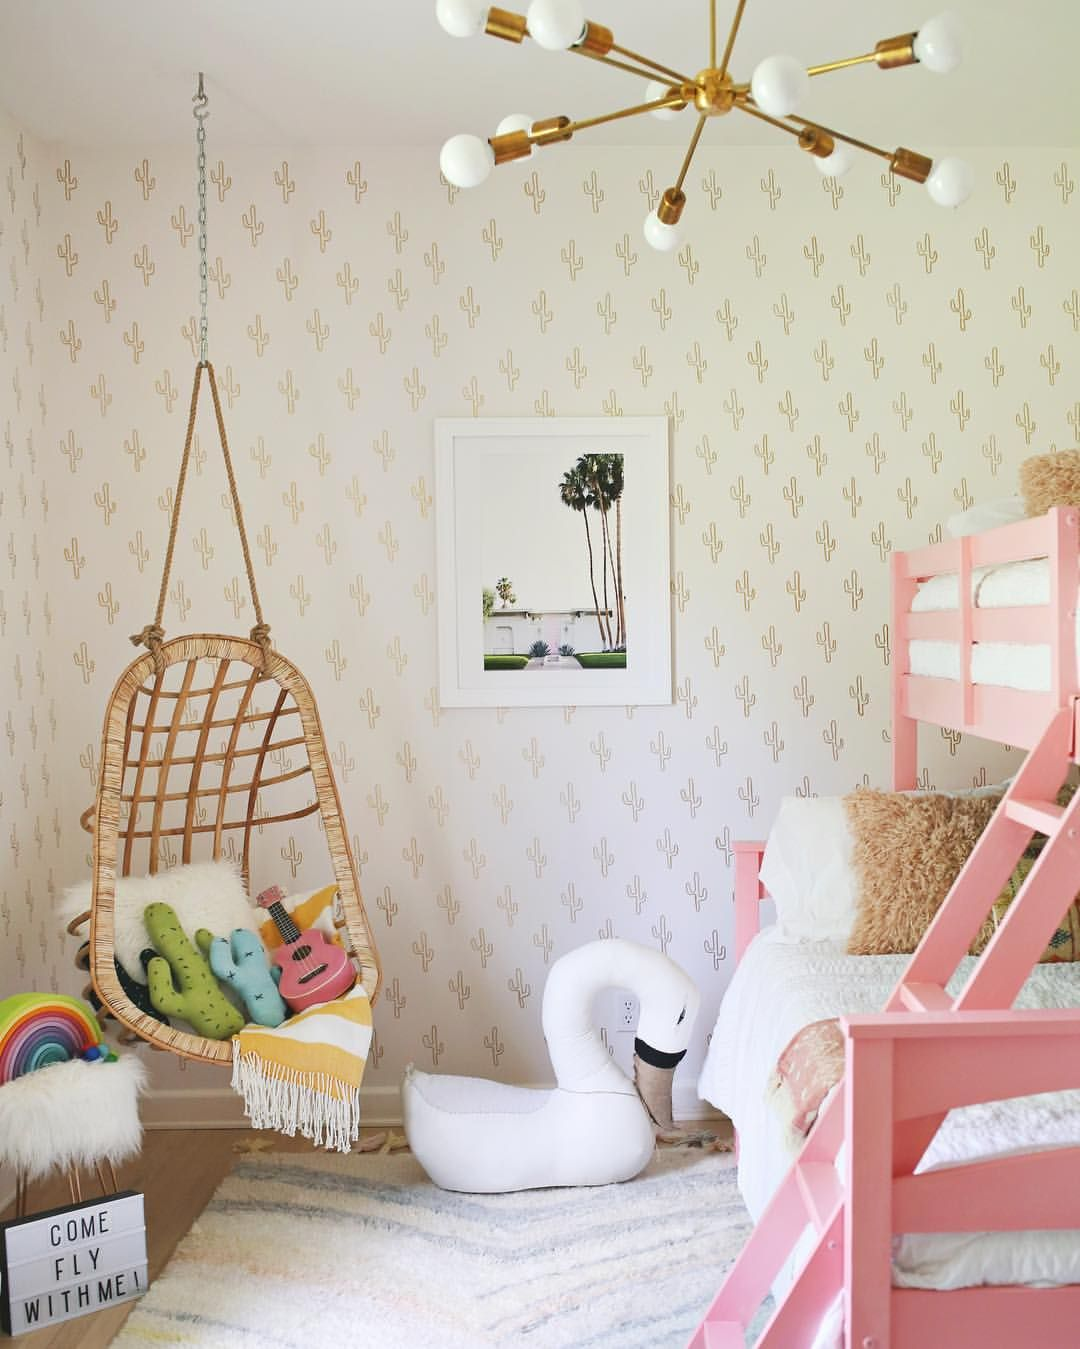 Pink Bunk Bed For The Girls Room Instagram Photo By At Elsielarson